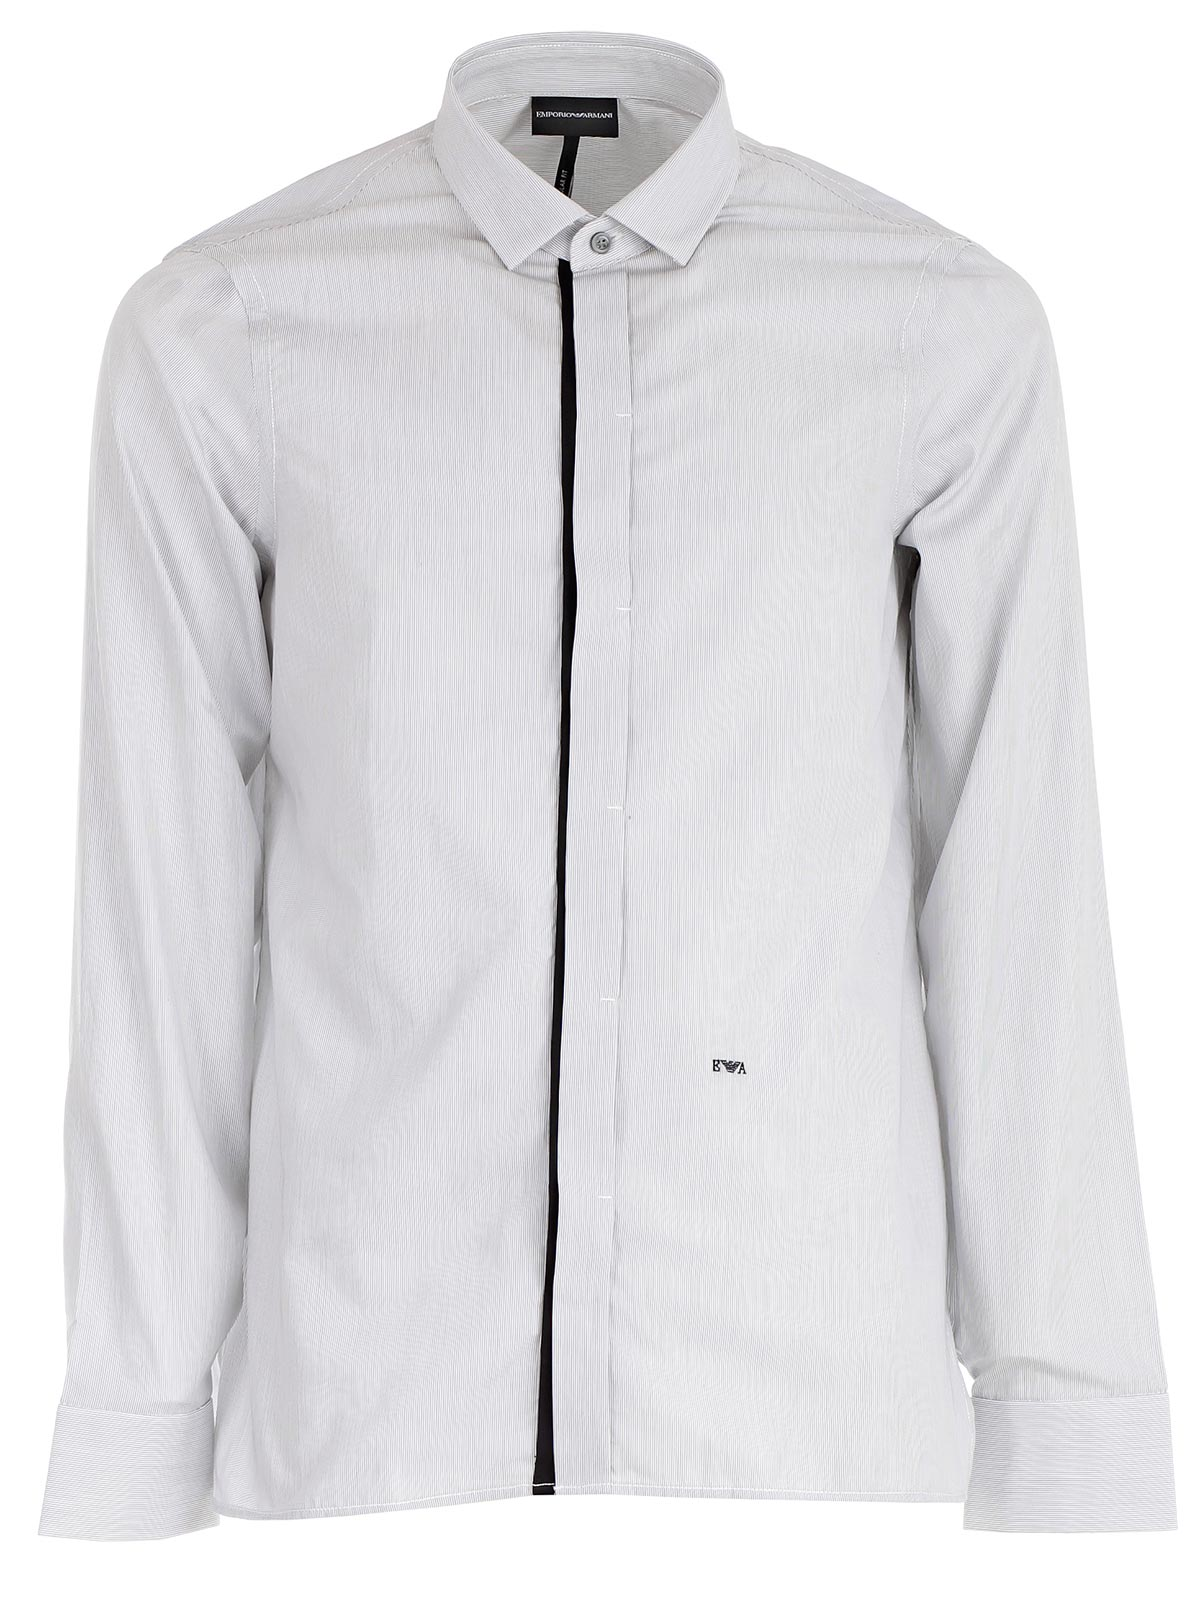 Picture of Emporio Armani Shirt